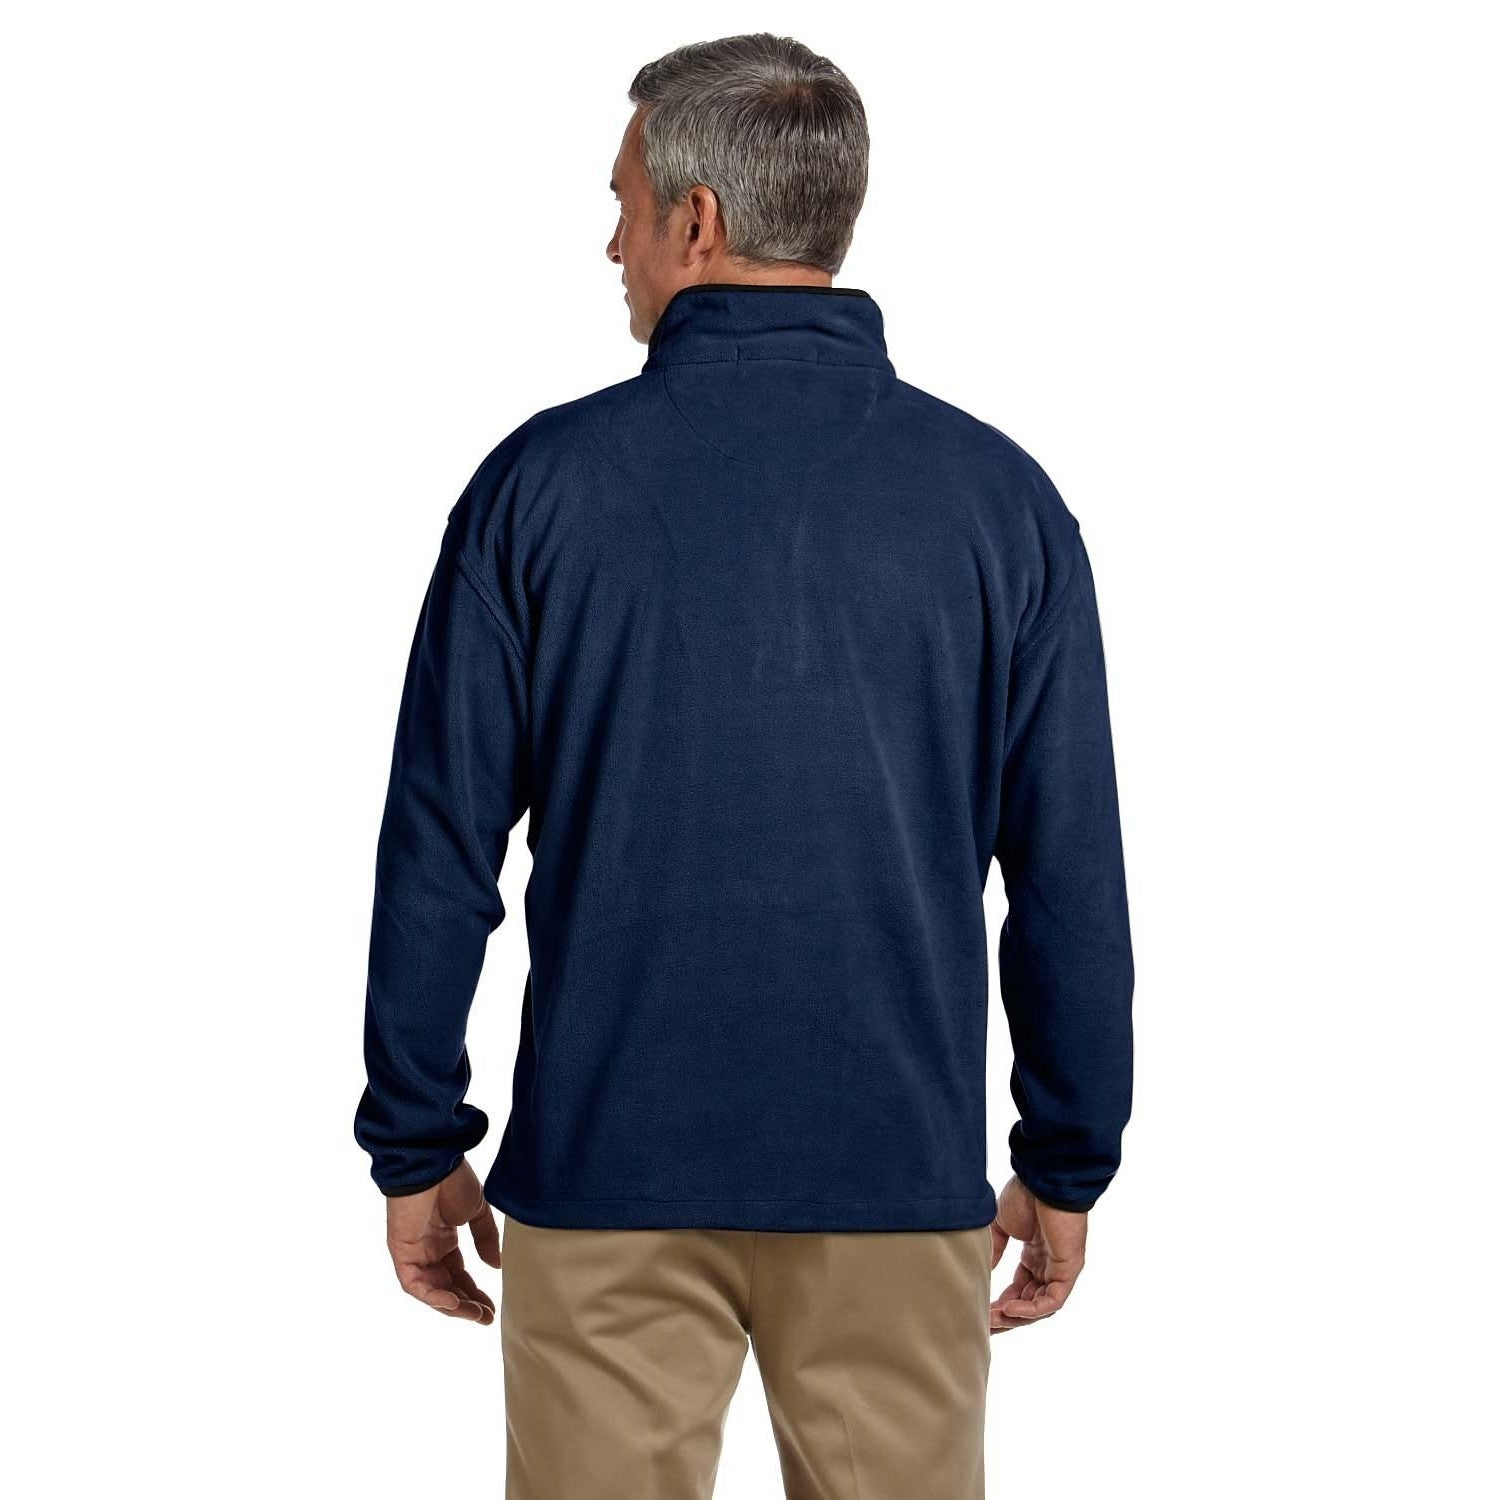 Shop Mens Microfleece Quarter Zip Pull Over Sweater On Sale